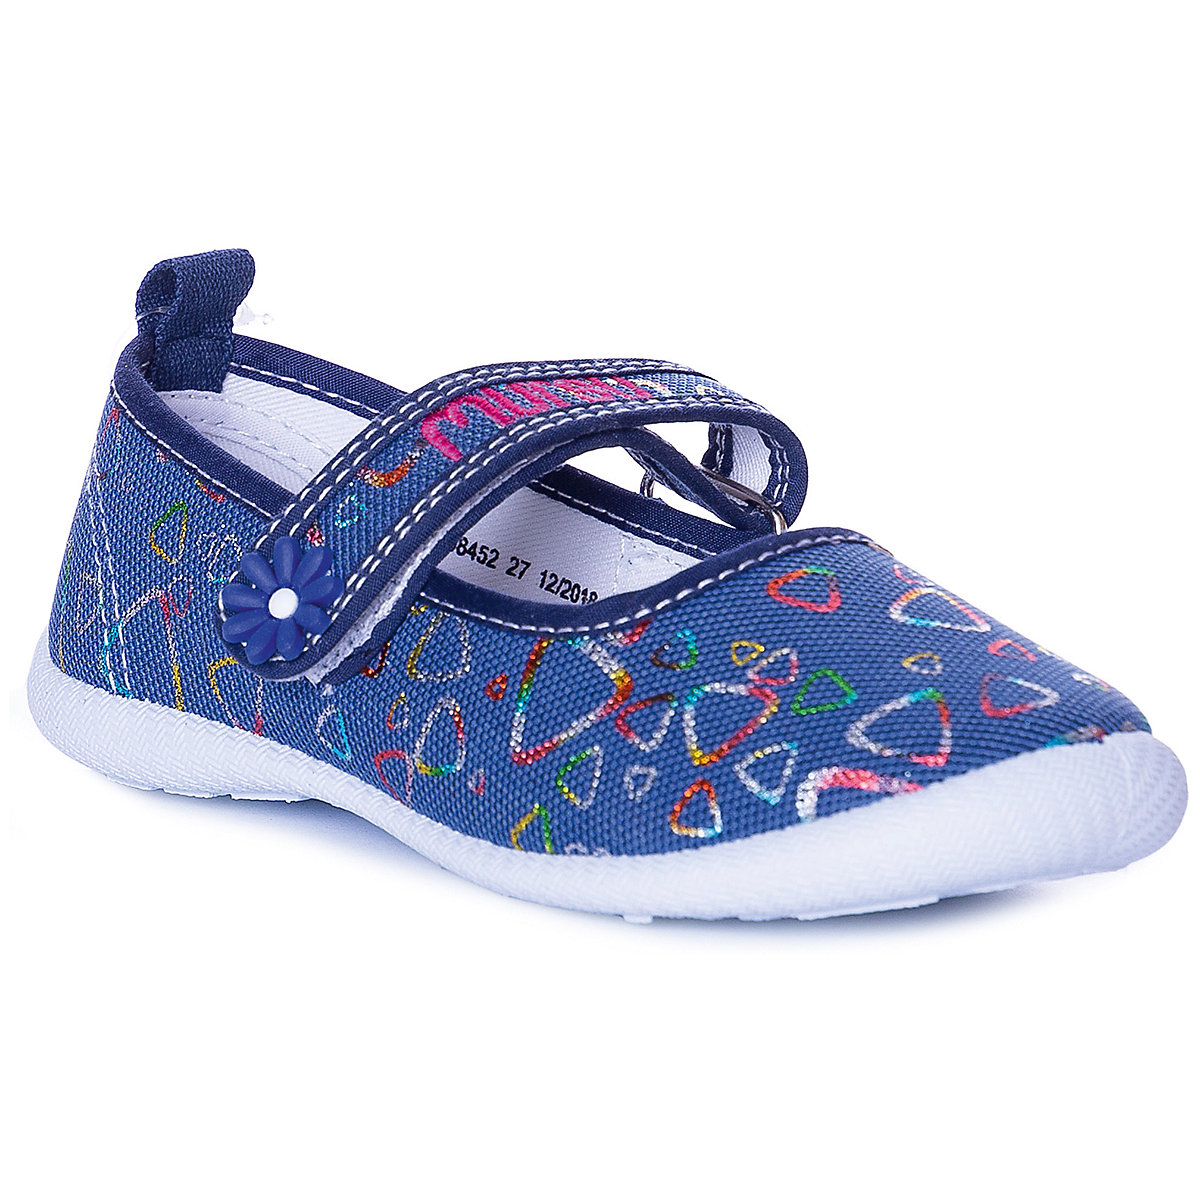 MURSU Children's Flats 10612129 summer ballet all-season footwear Shoes for girls girl light blue casual ballet leopard pattern non leather flat shoes women fashion boat shoes zapatos mujer tacon sapato flats large size 4 16